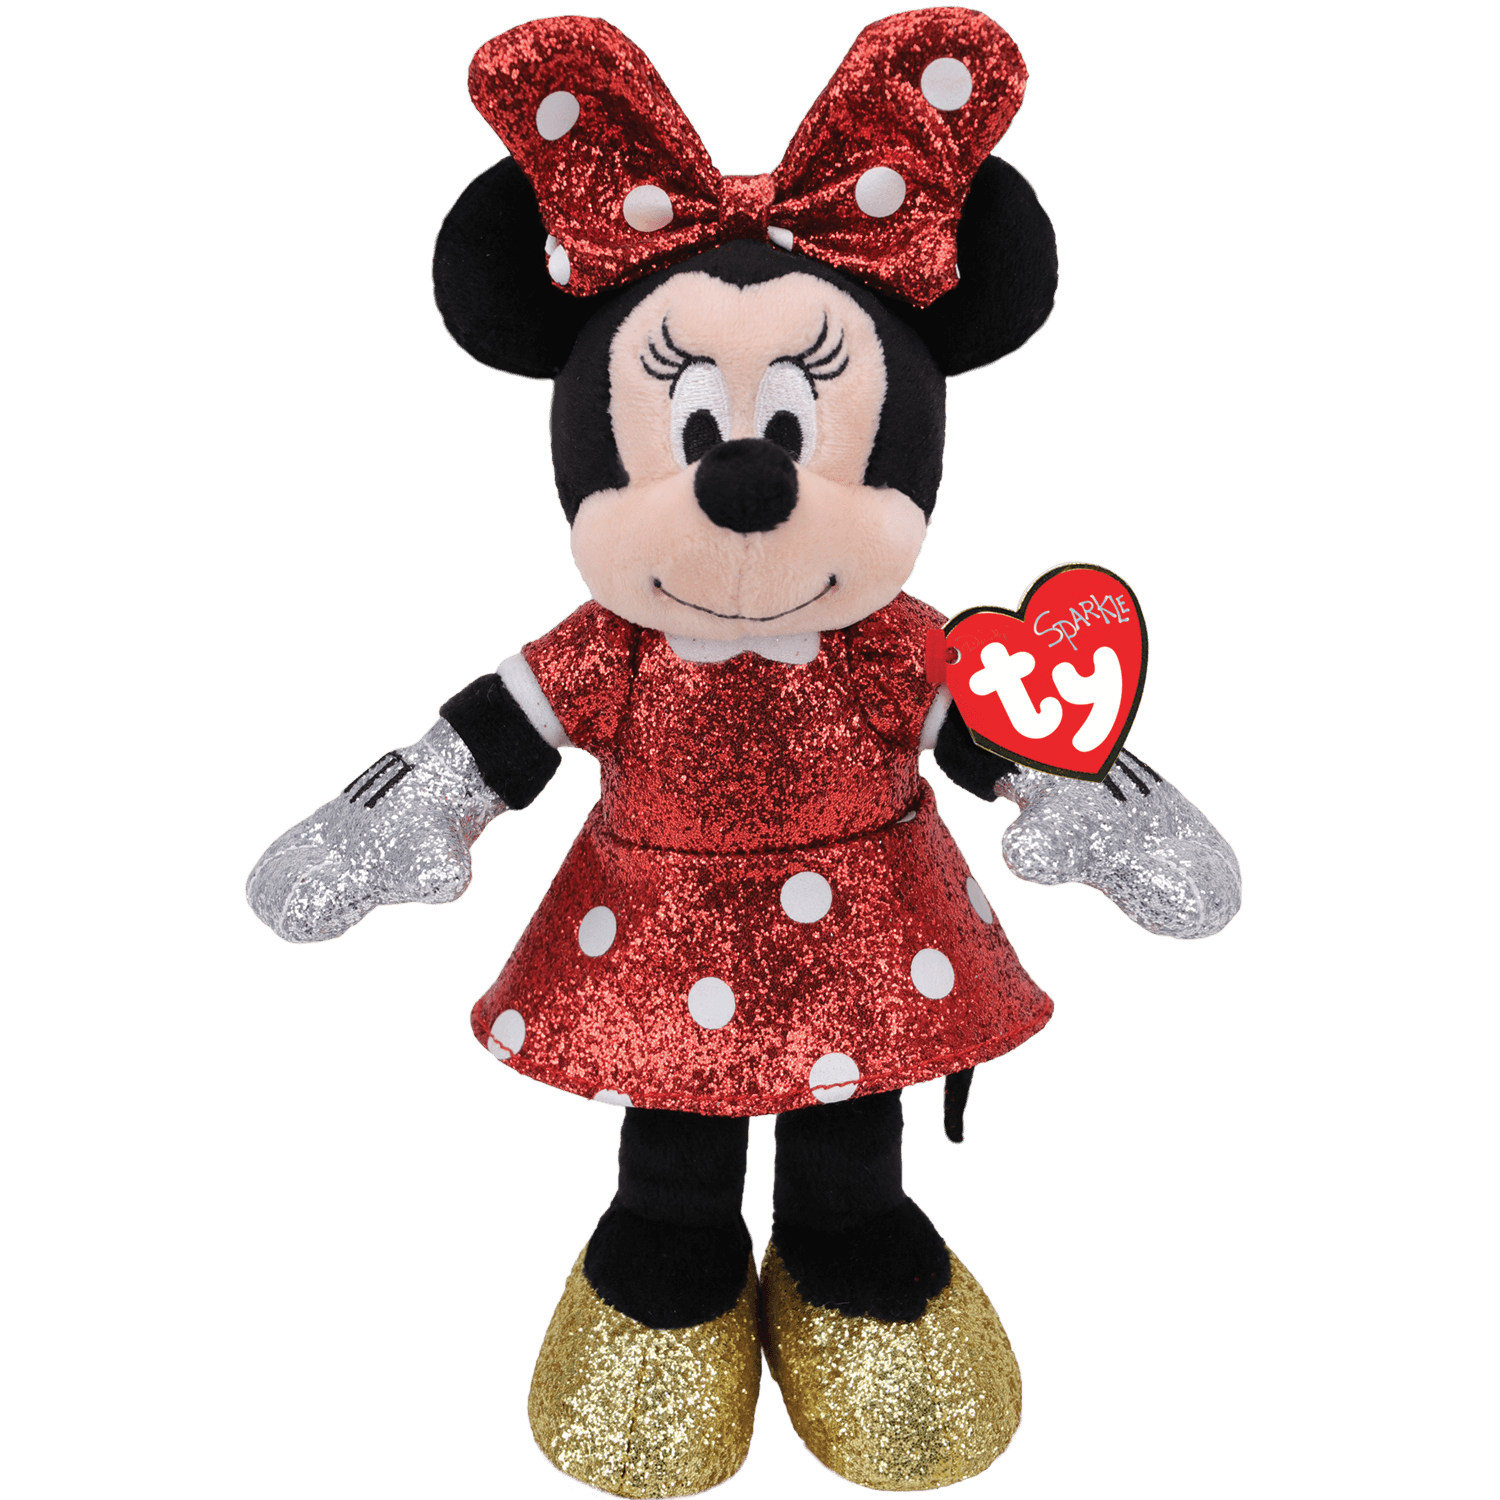 Minnie Mouse - Red Sparkle Medium